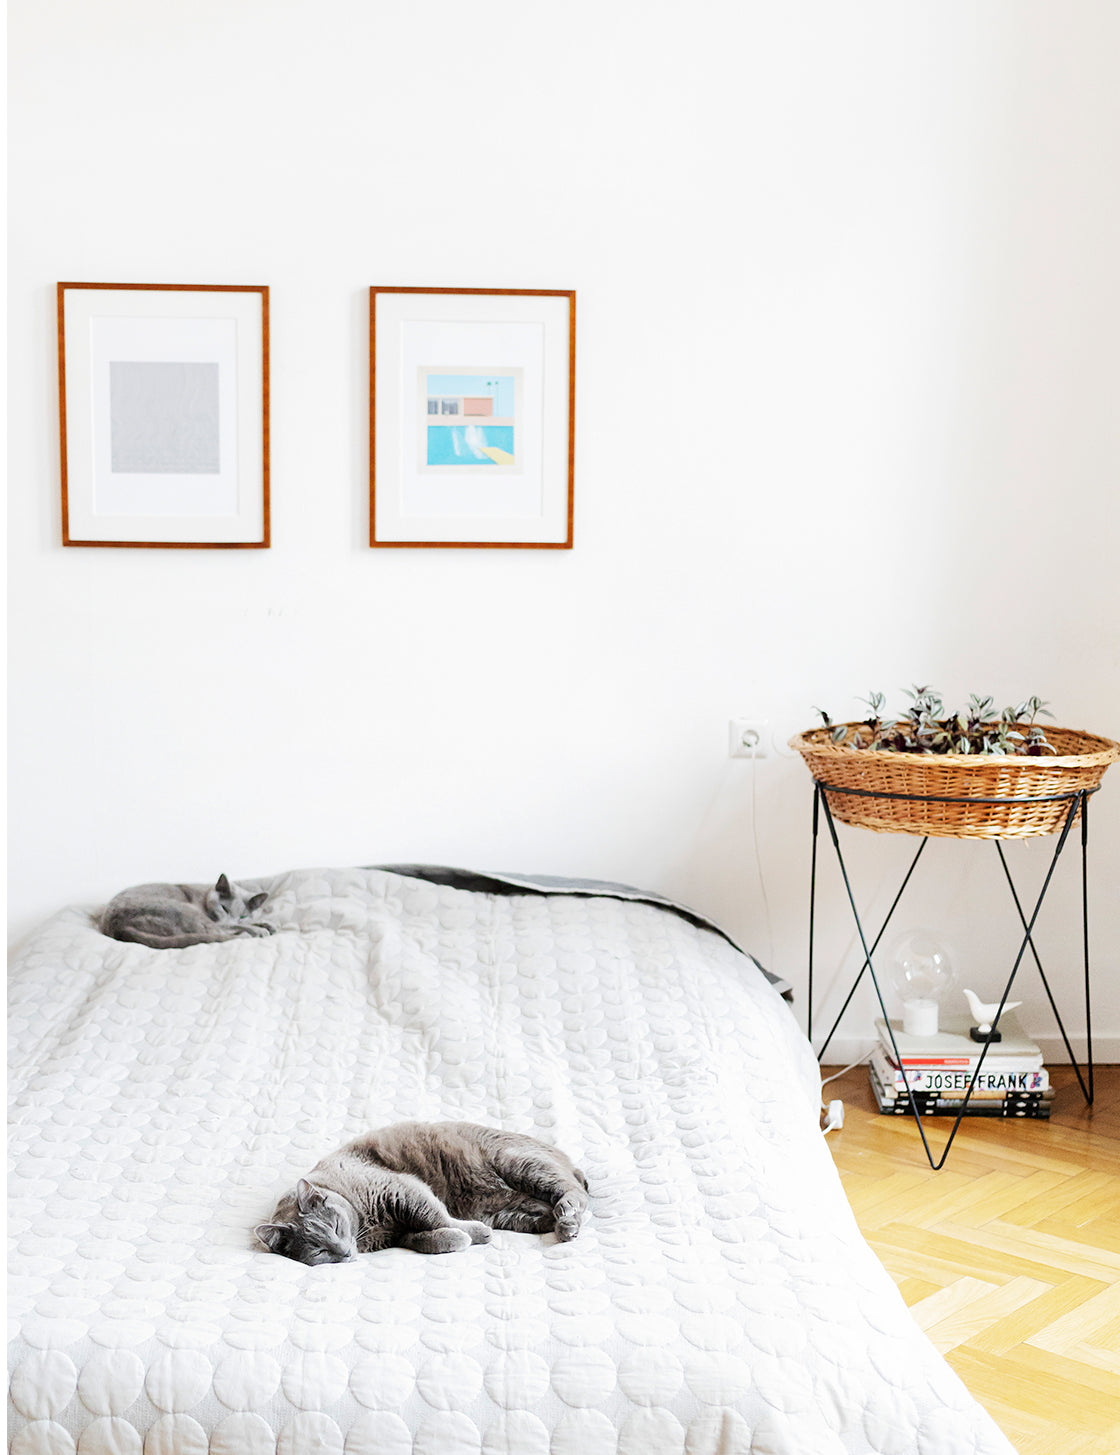 indian goods company online store contemporary indian design blog considered living inspiration home tour architect maria megina graphic designer editor stephan goeschl vienna austria apartment cats minimal history belonging white bedroom